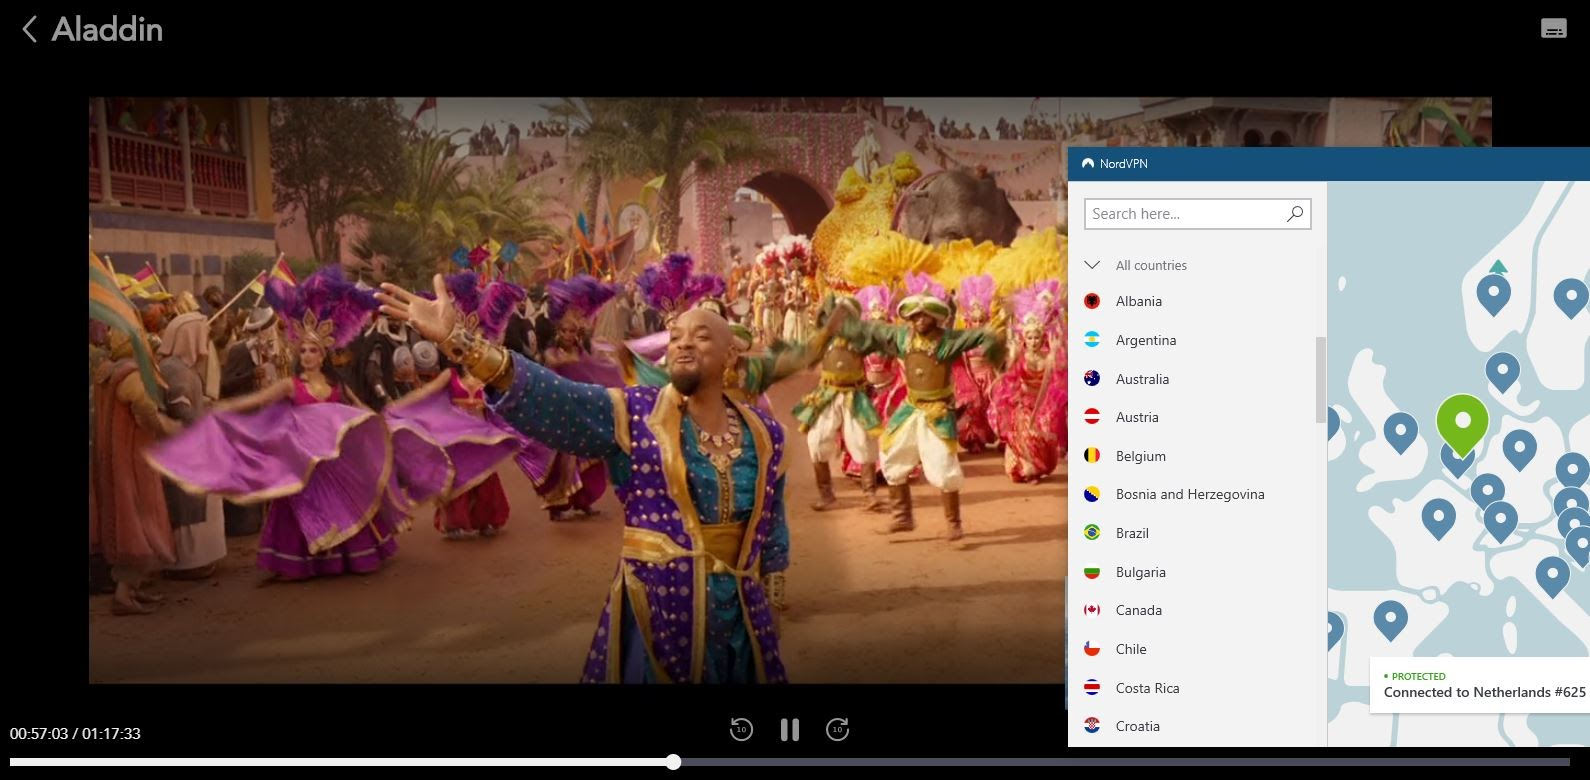 Screenshot of NordVPN connected to a server in the Netherlands while streaming Aladdin on Disney Plus